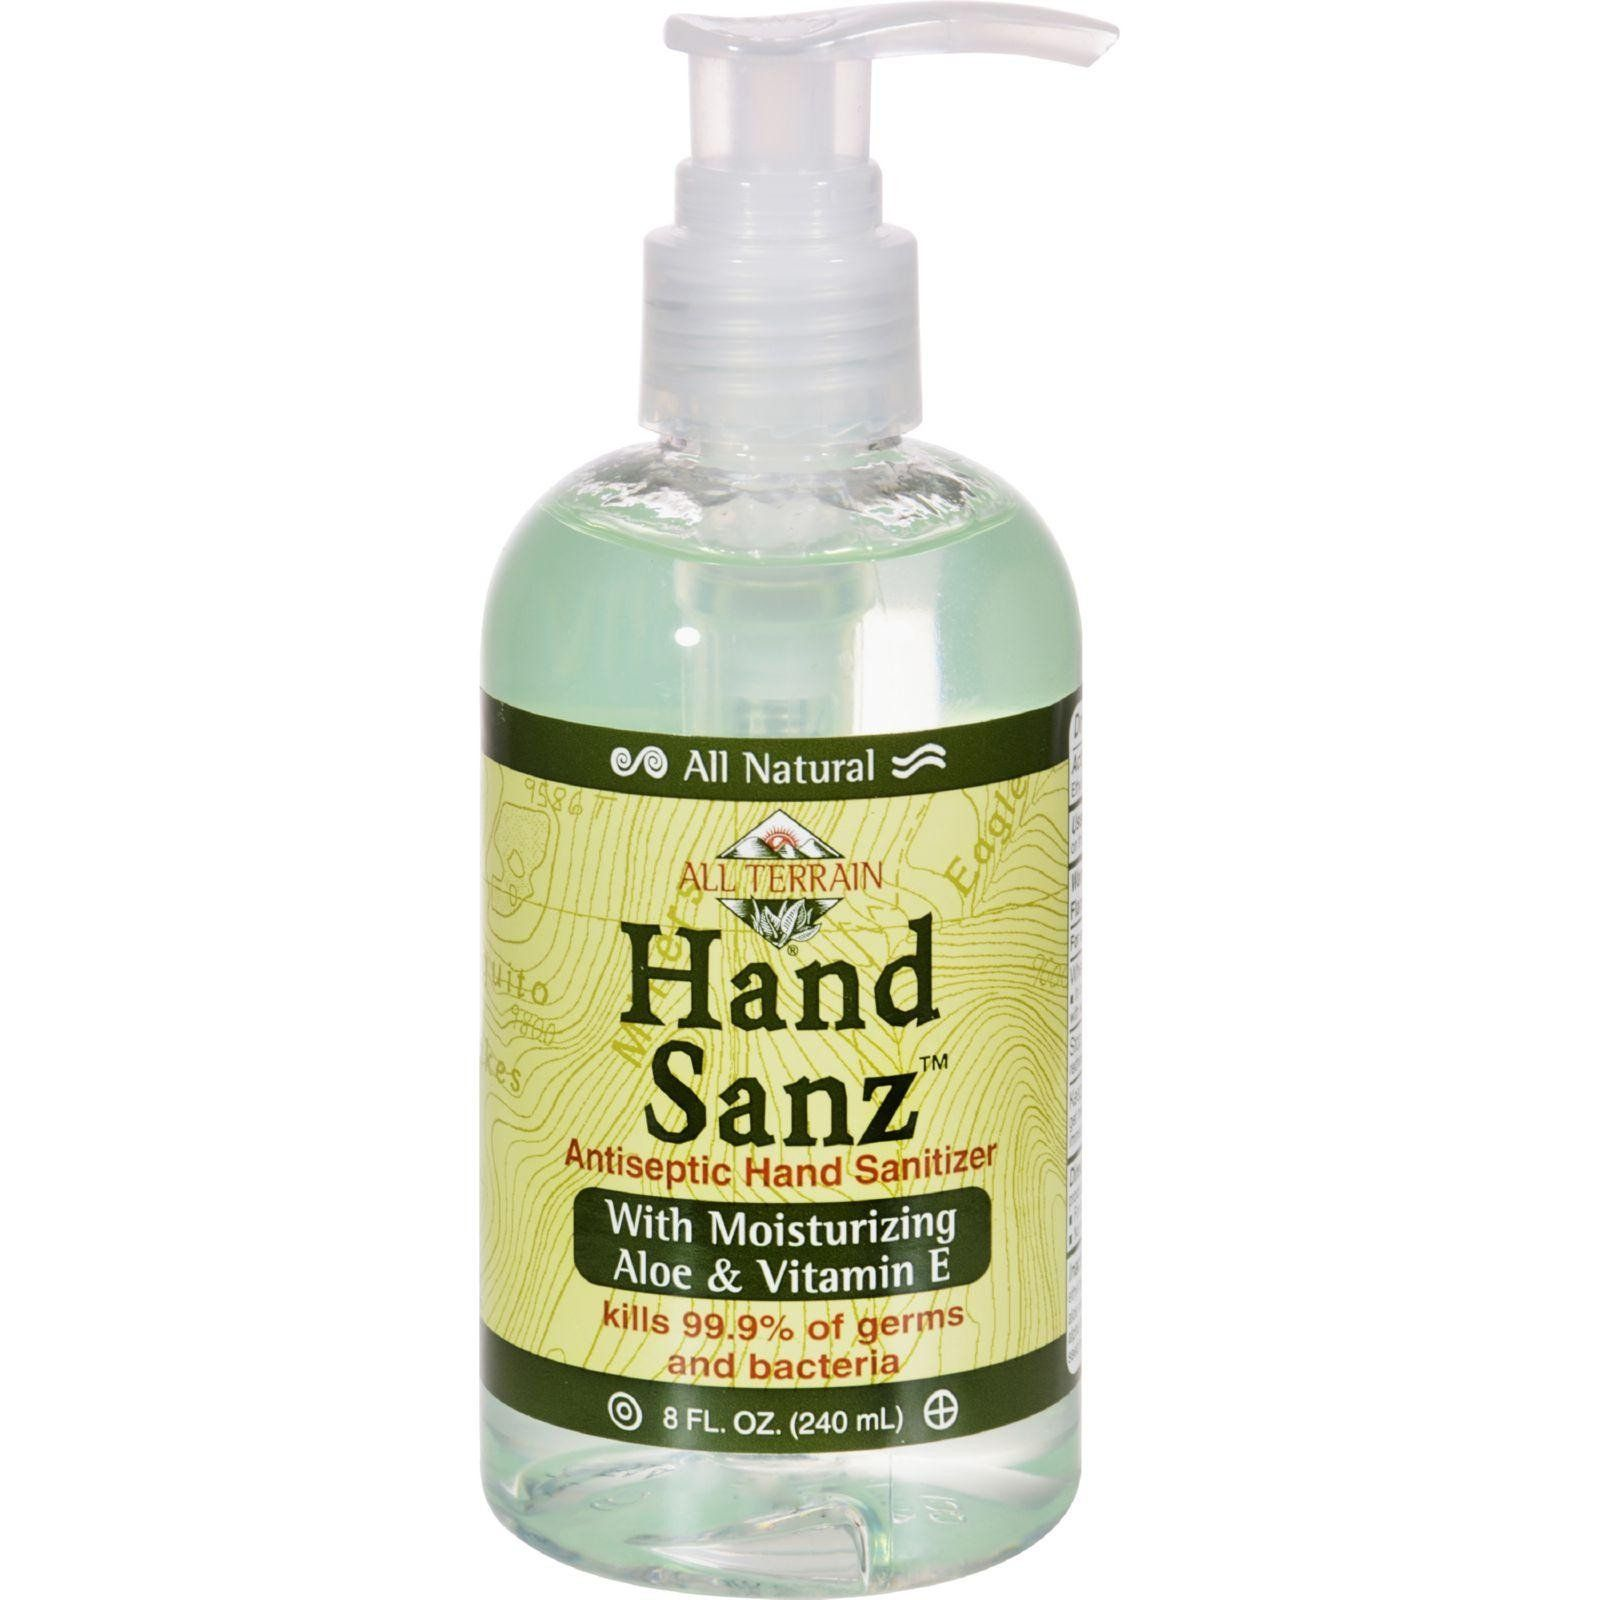 All Terrain All Natural Hand Sanz 8 Fl Oz Natural Hand